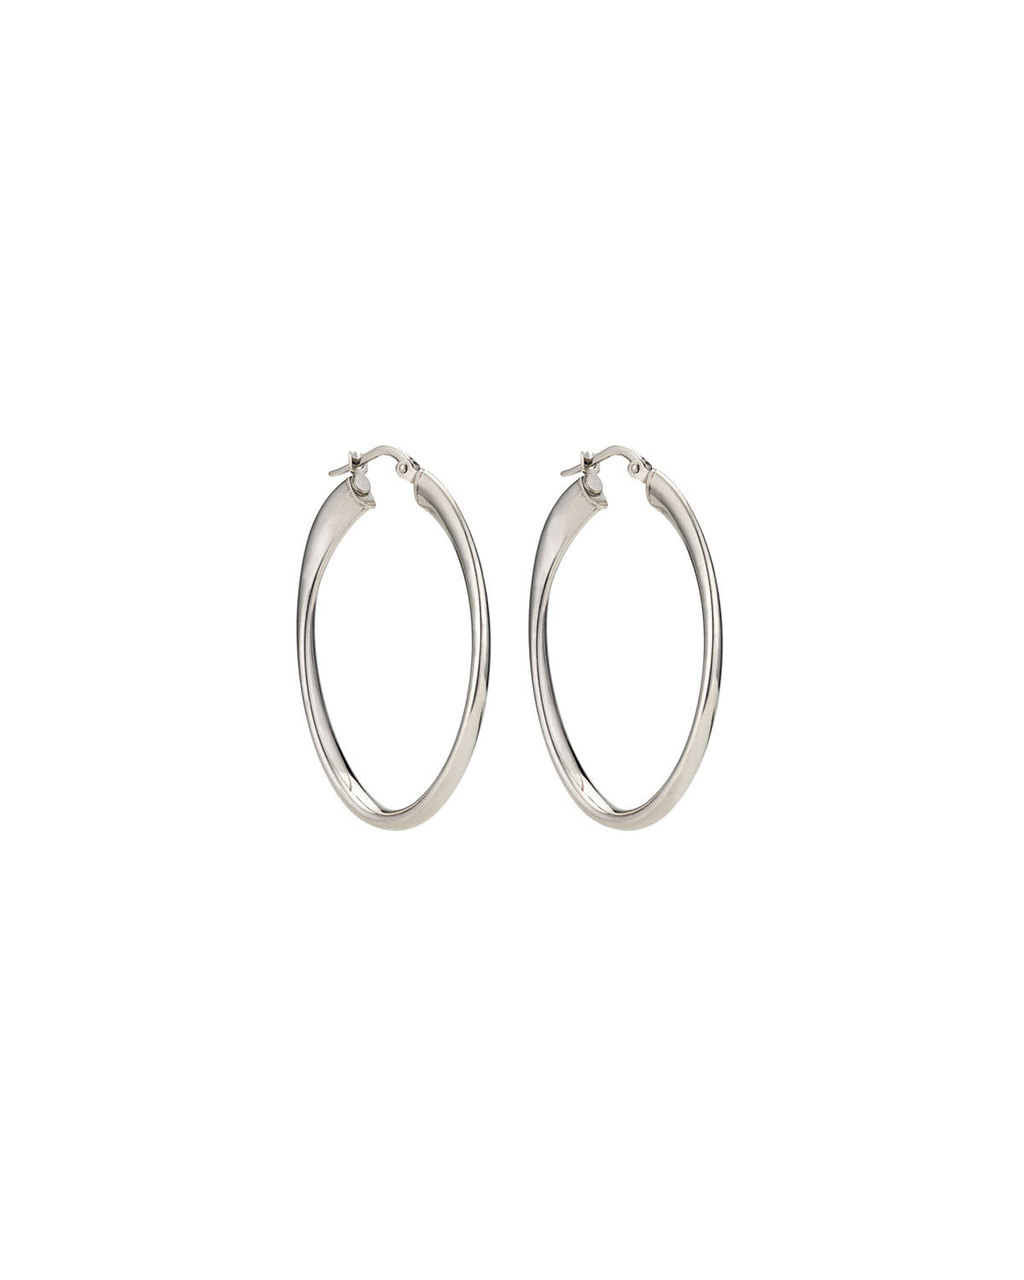 Sterling Silver Oval Hoops - predominant colour: silver; occasions: evening; style: hoop; length: long; size: standard; material: chain/metal; fastening: pierced; finish: metallic; season: s/s 2016; wardrobe: event